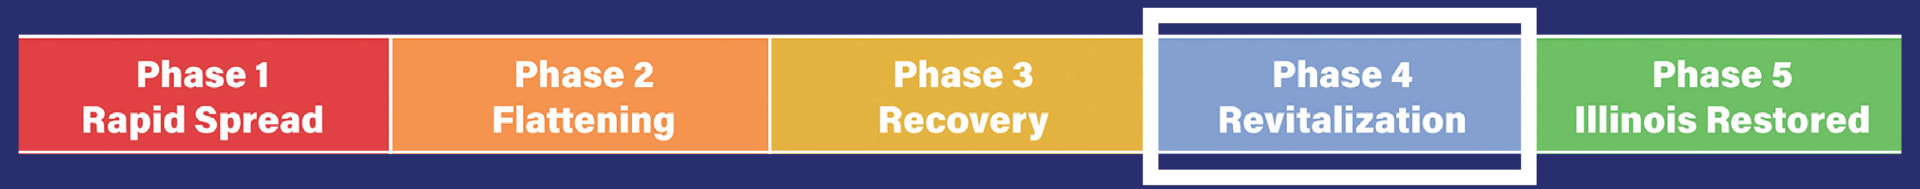 Phase 4 Recovery